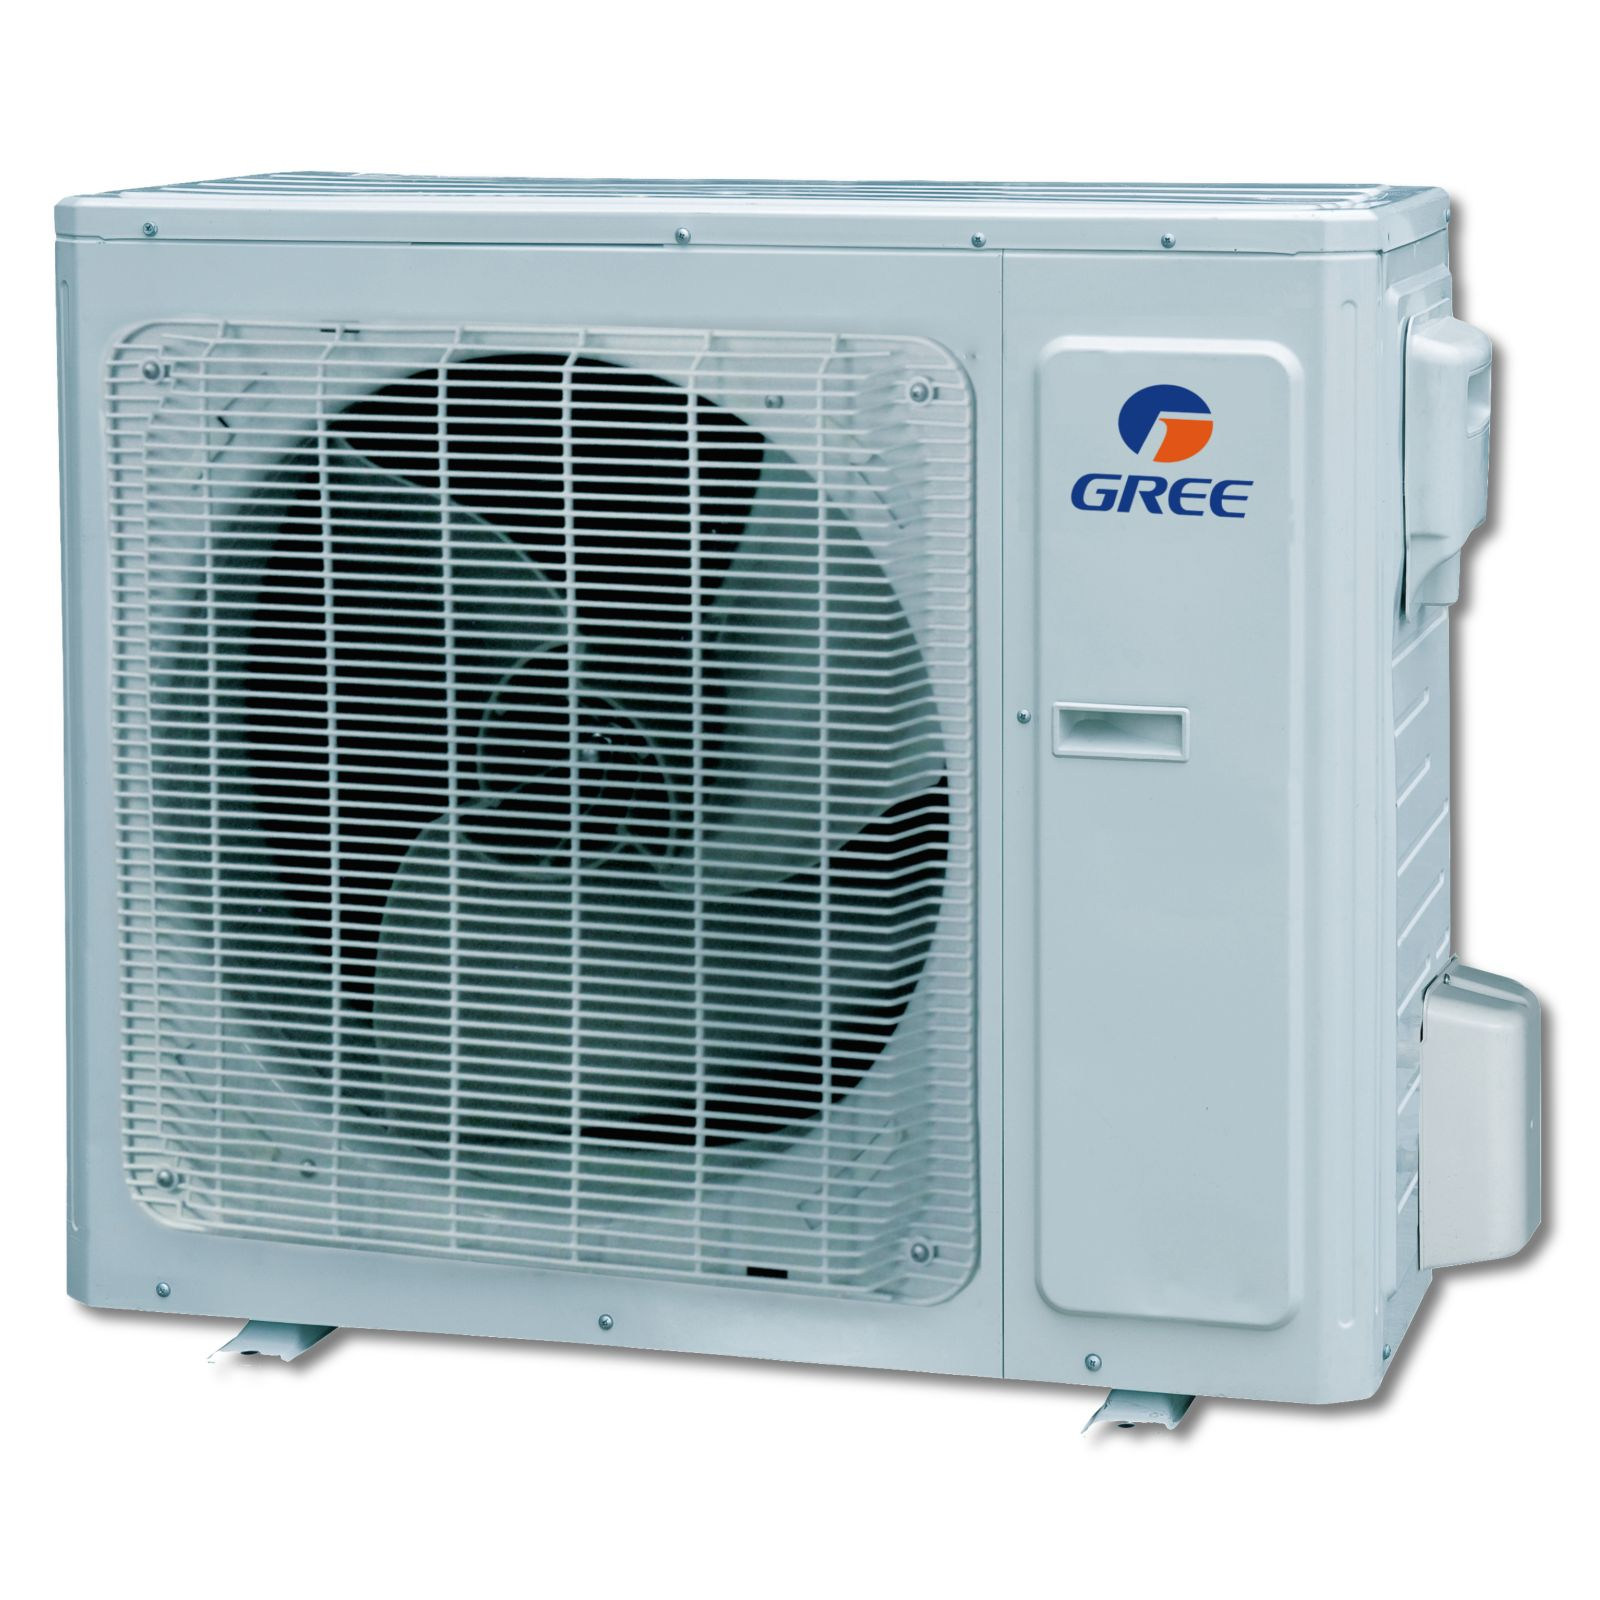 GREE UMAT30HP230V1AO - U-Match 30,000 BTU/h, 16 SEER  Inverter Heat Pump Condensing Unit, 208-230 Volt, 60 Hz